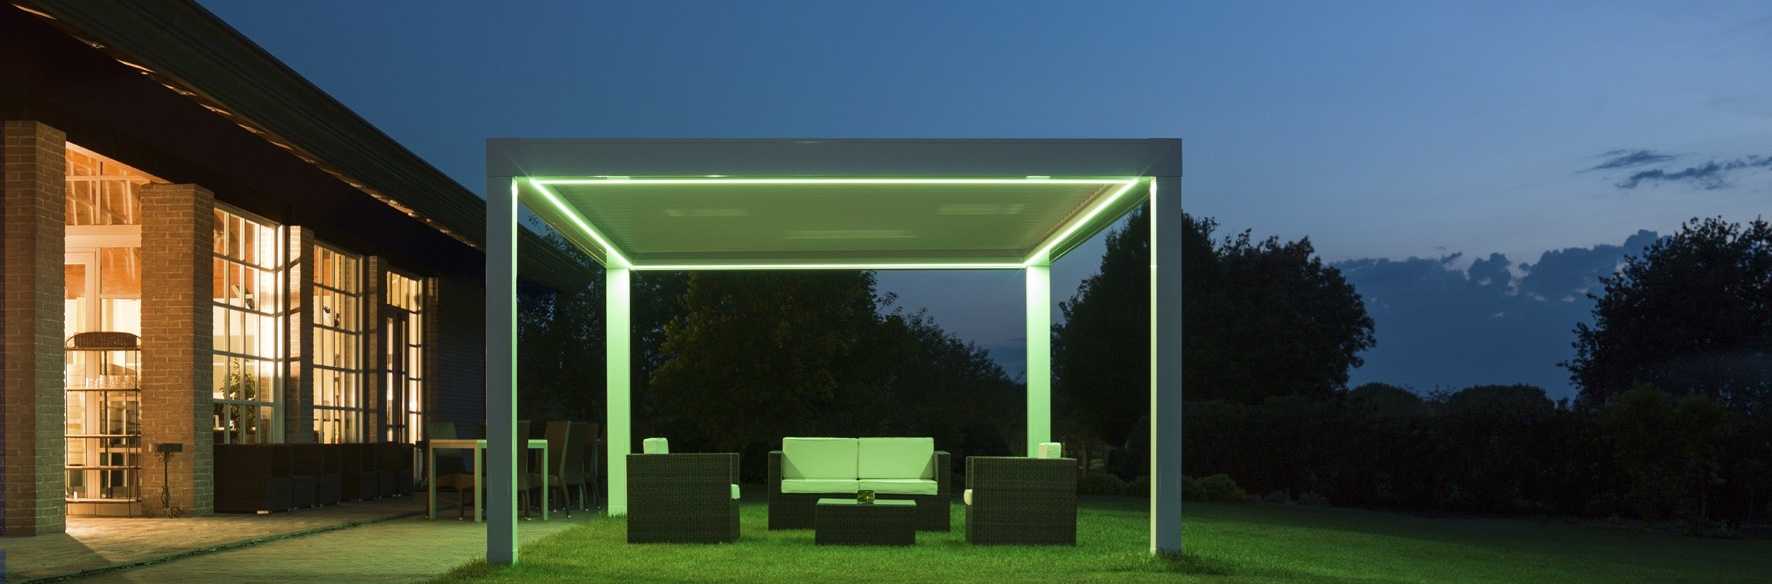 pergola bioclimatique avec store lanton. Black Bedroom Furniture Sets. Home Design Ideas